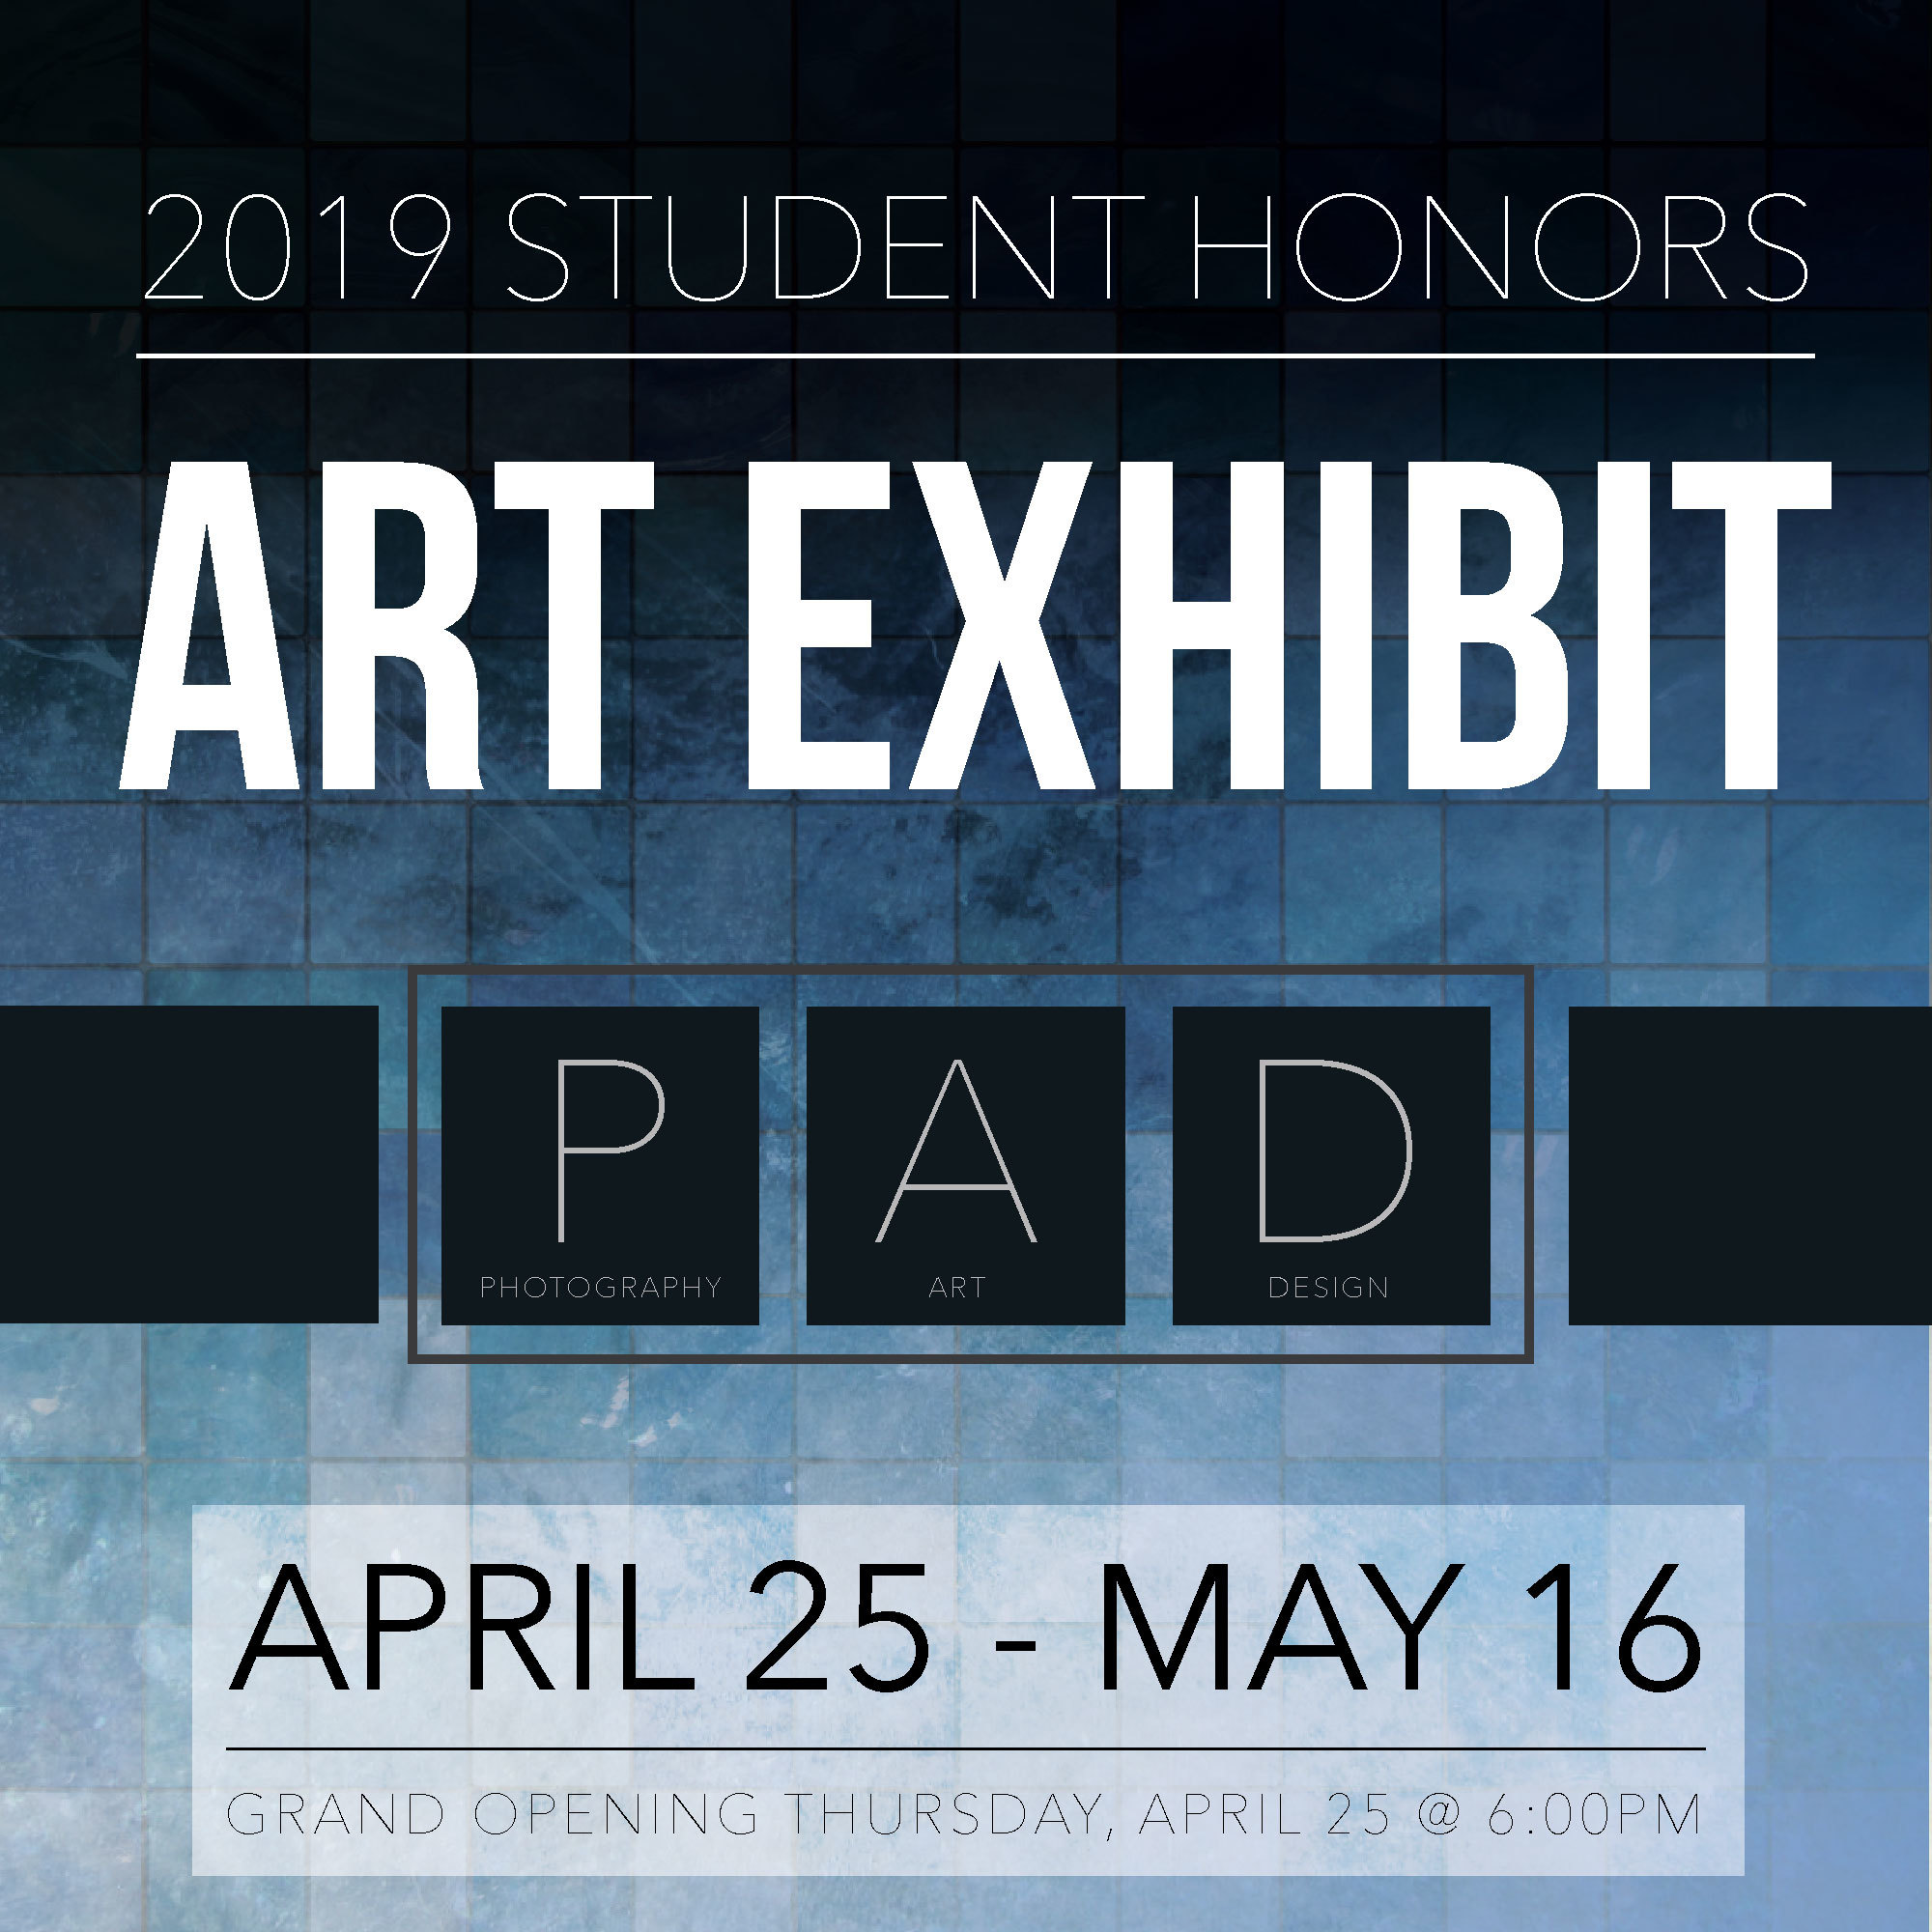 Student Honors Art Exhibition on Display at Highland Community College